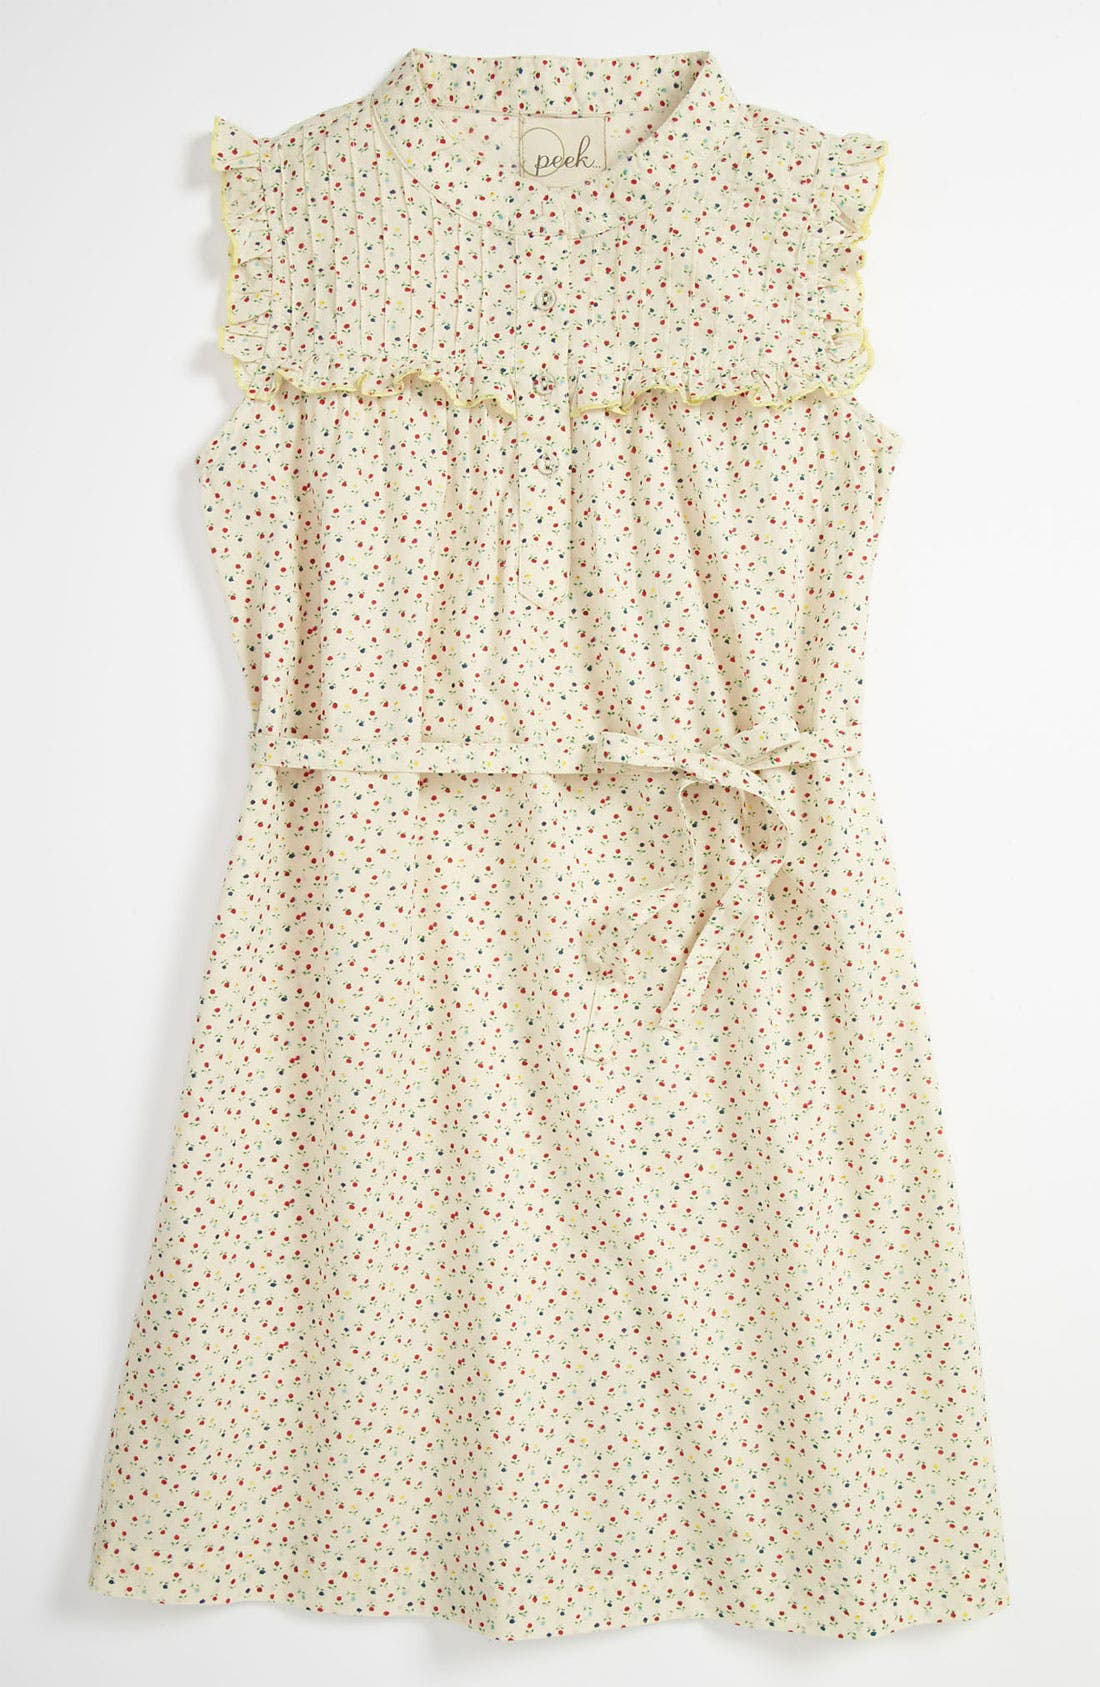 Alternate Image 1 Selected - Peek 'Lily' Dress (Toddler, Little Girls & Big Girls)